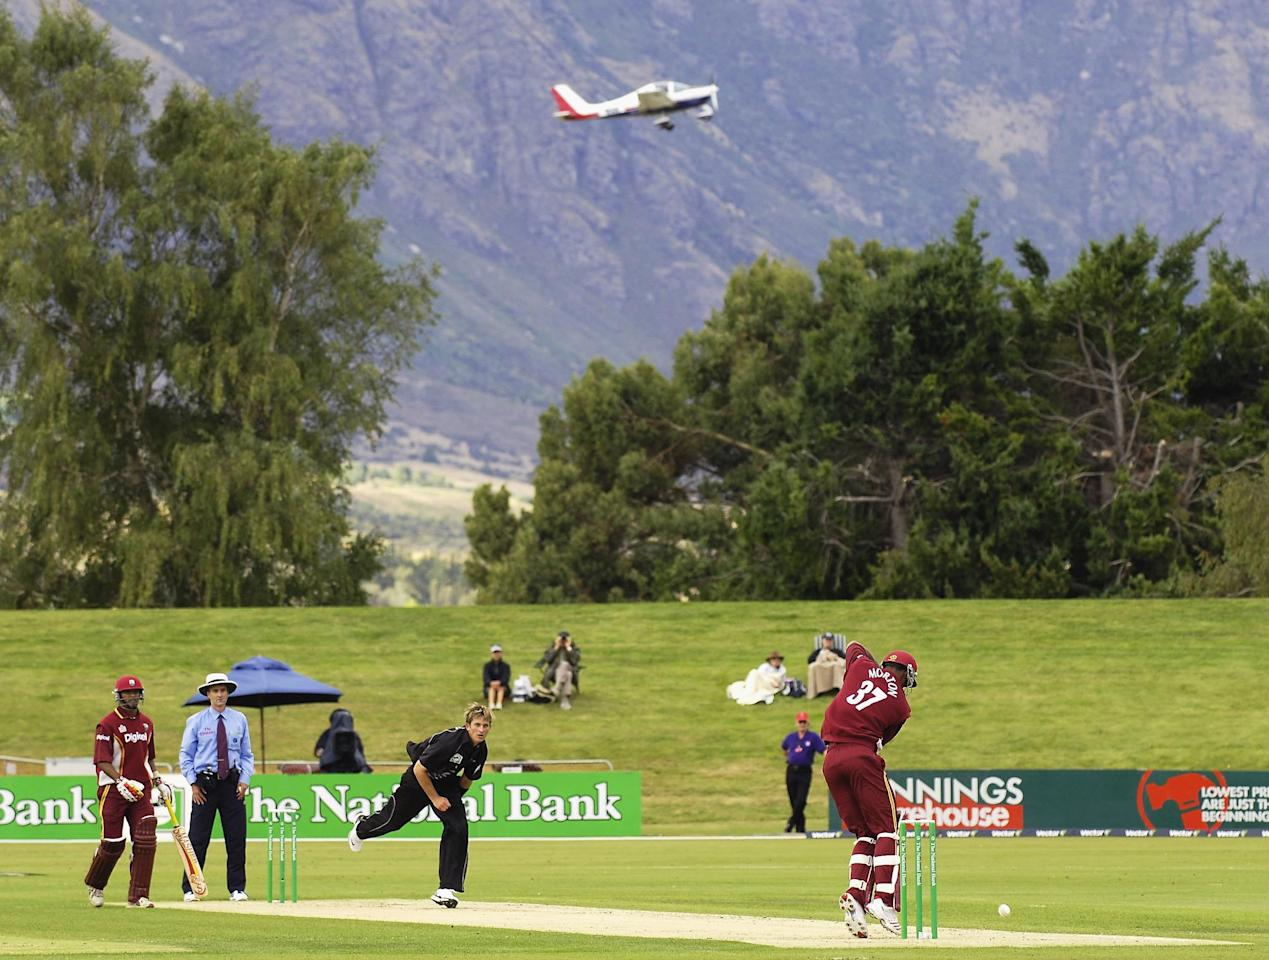 QUEENSTOWN, NEW ZEALAND - FEBRUARY 22:  An aircraft flies past players during the second one day international cricket match between New Zealand and the West Indies at the Queenstown Event Centre, February 22, 2006 in Queenstown, New Zealand.     (Photo by Michael Thomas/Getty Images)